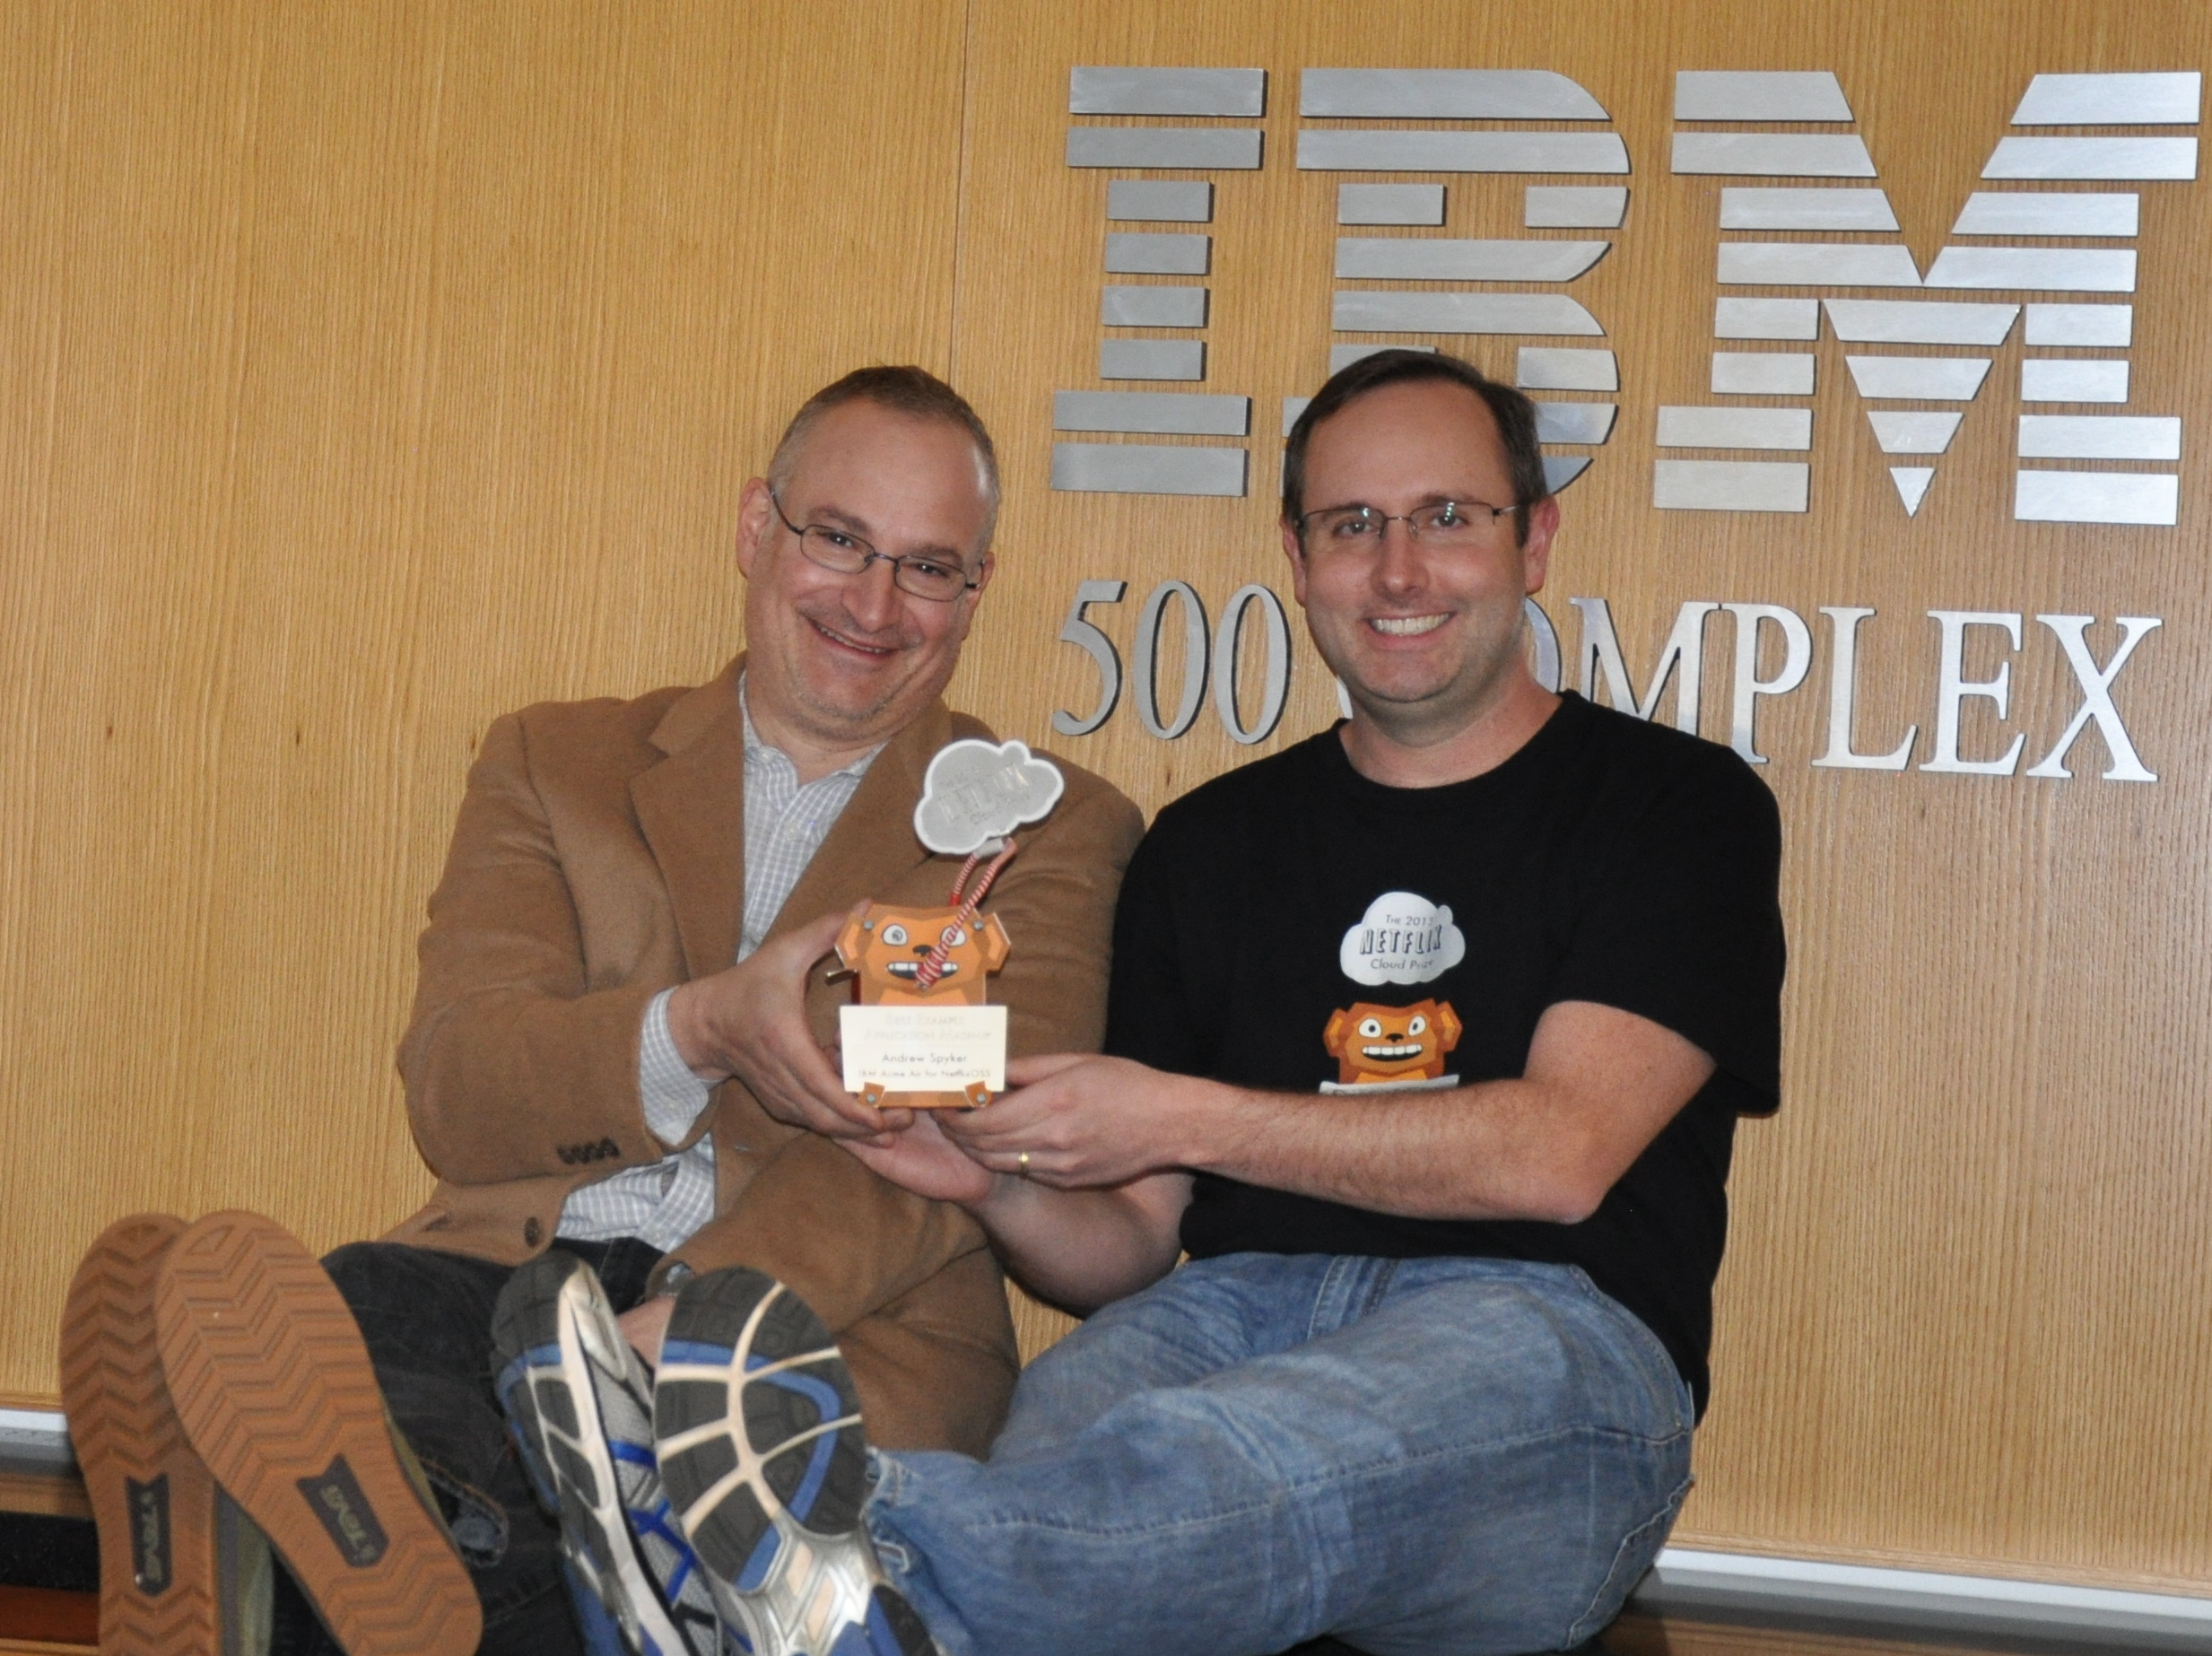 IBM's Jerry Cuomo and Andrew Spyker with their Netflix Cloud Monkey trophies.